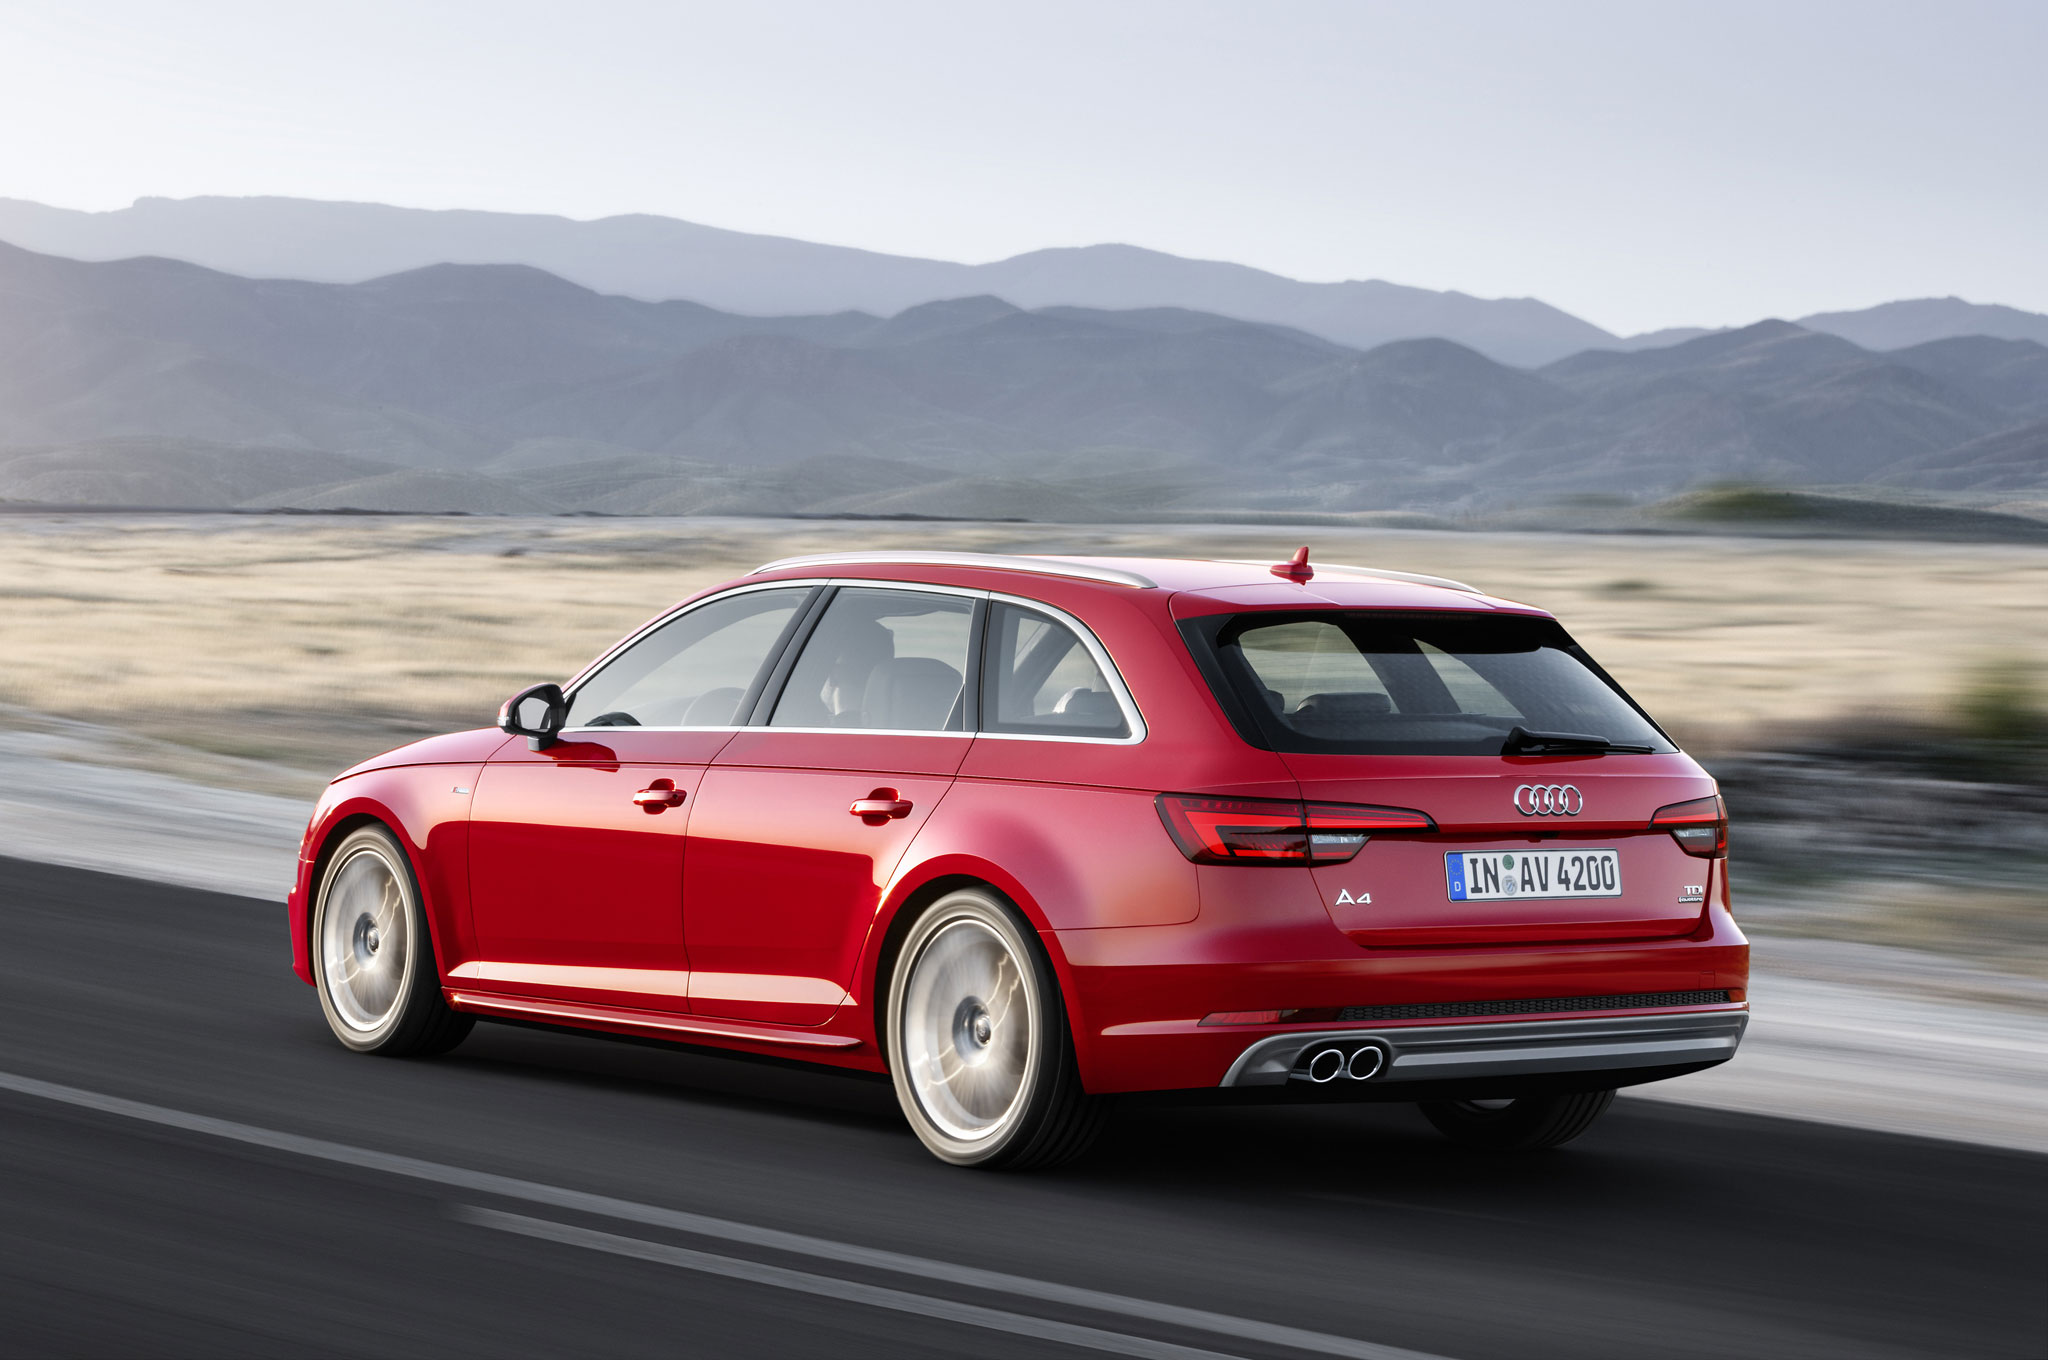 2017 Audi A4 Avant 3 0 TDI quattro rear three quarter in motion 02